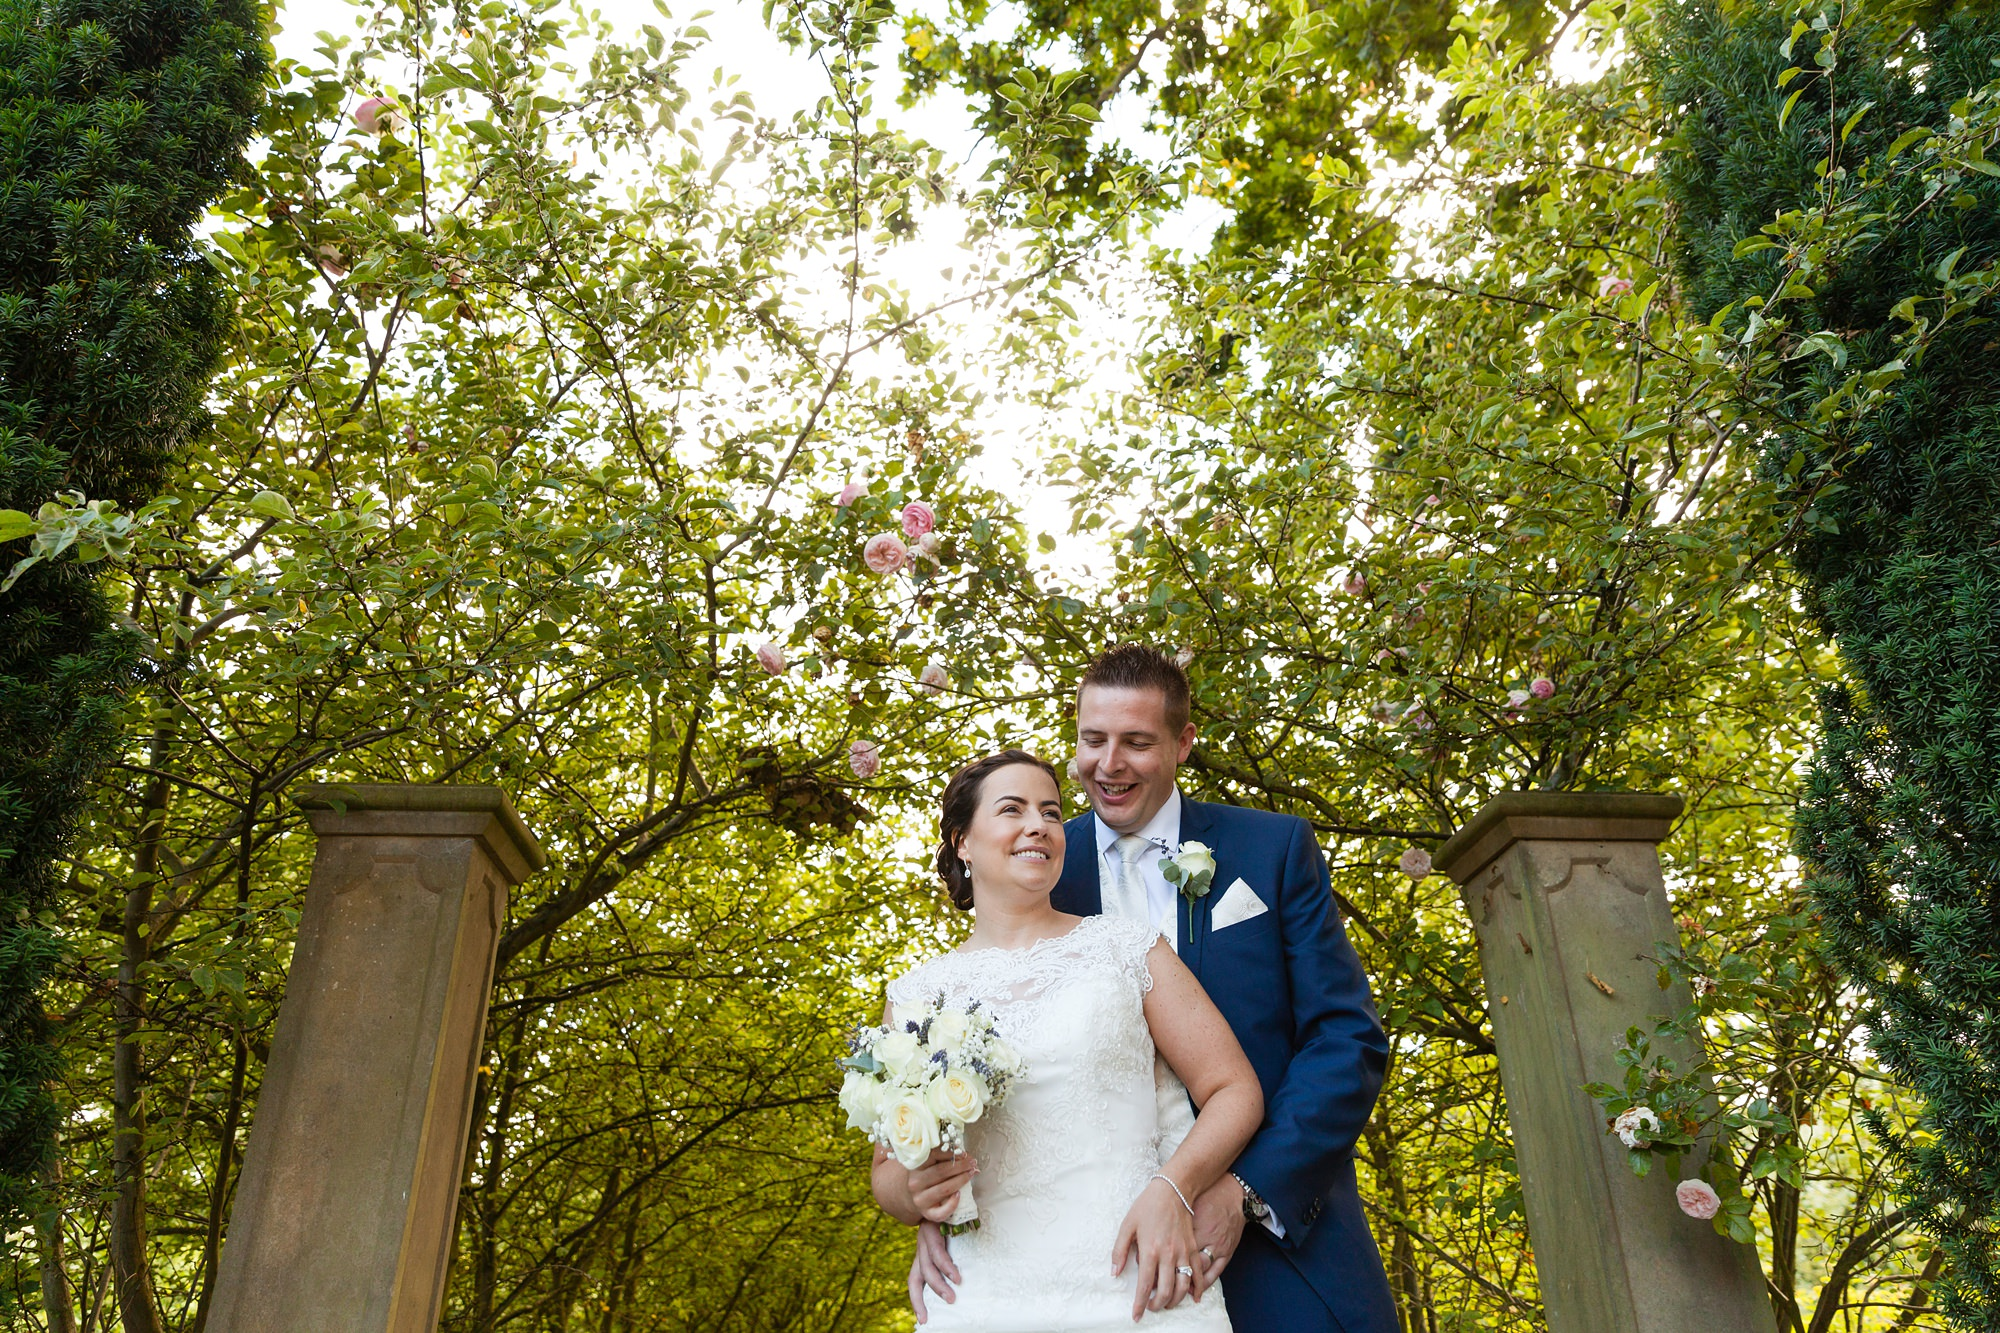 Yorkshire Wedding photography couples portrait